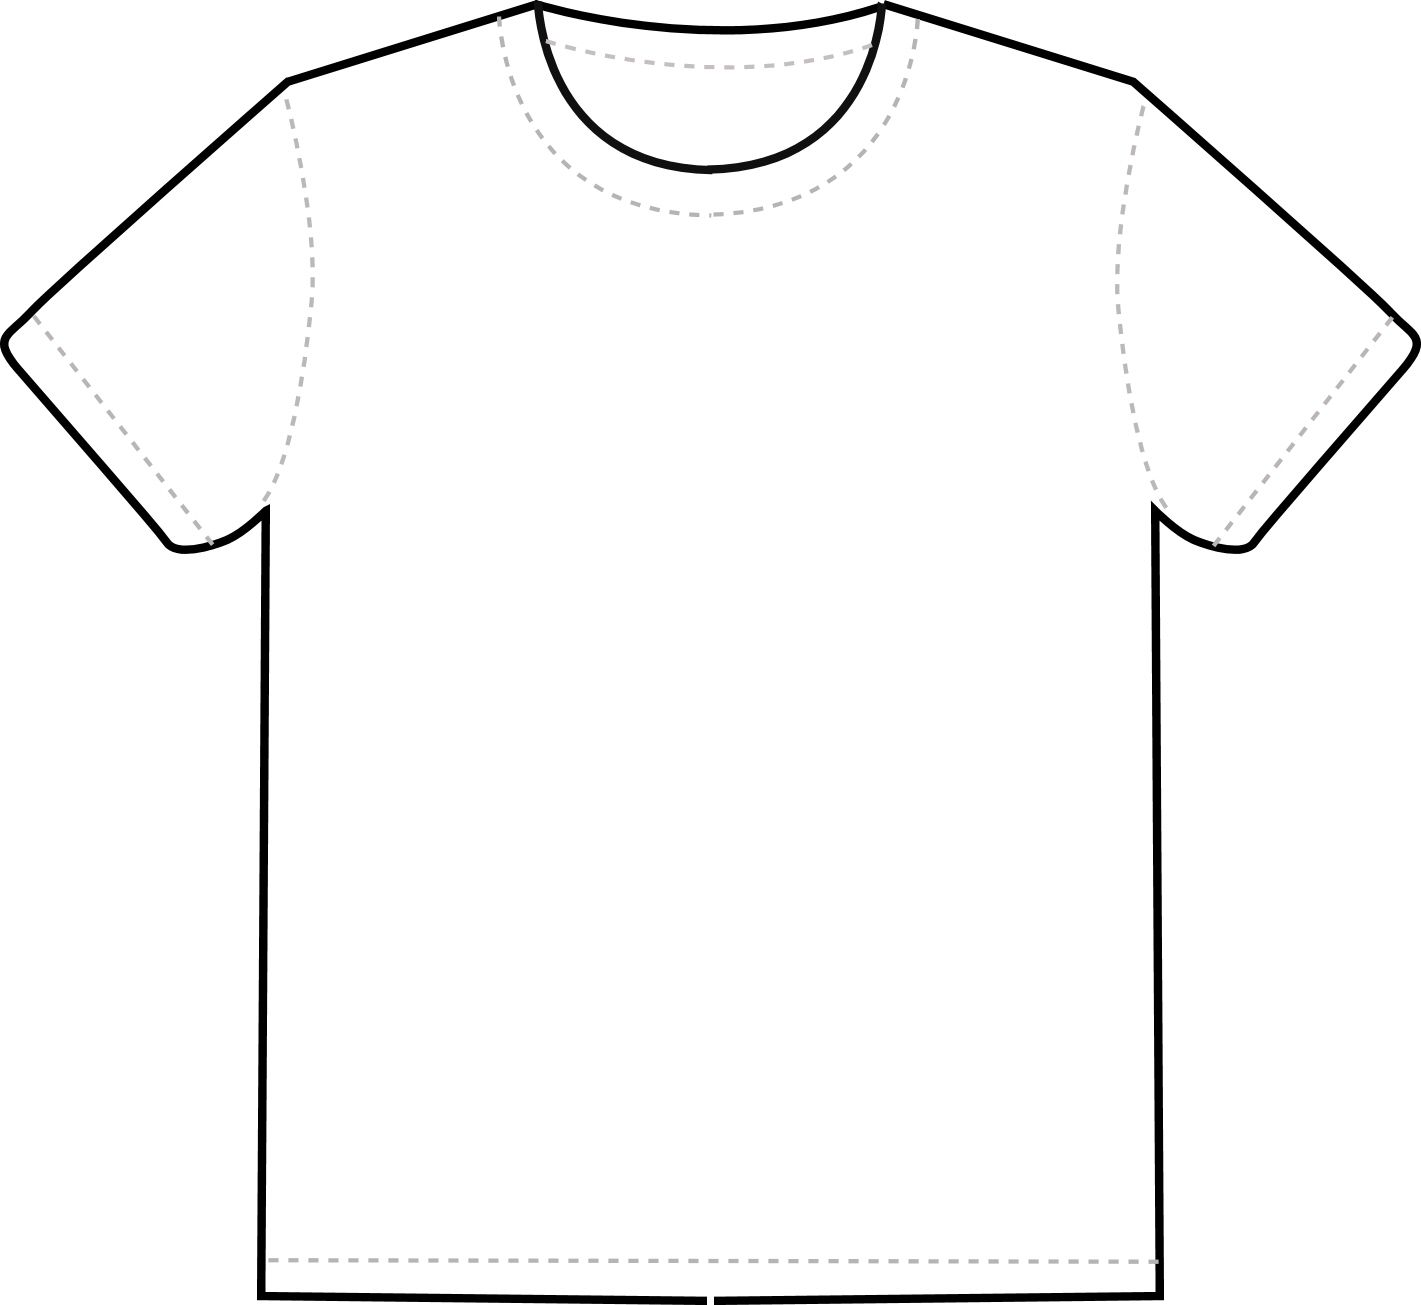 T shirt outline clipart - ClipArt Best - ClipArt Best | T ...